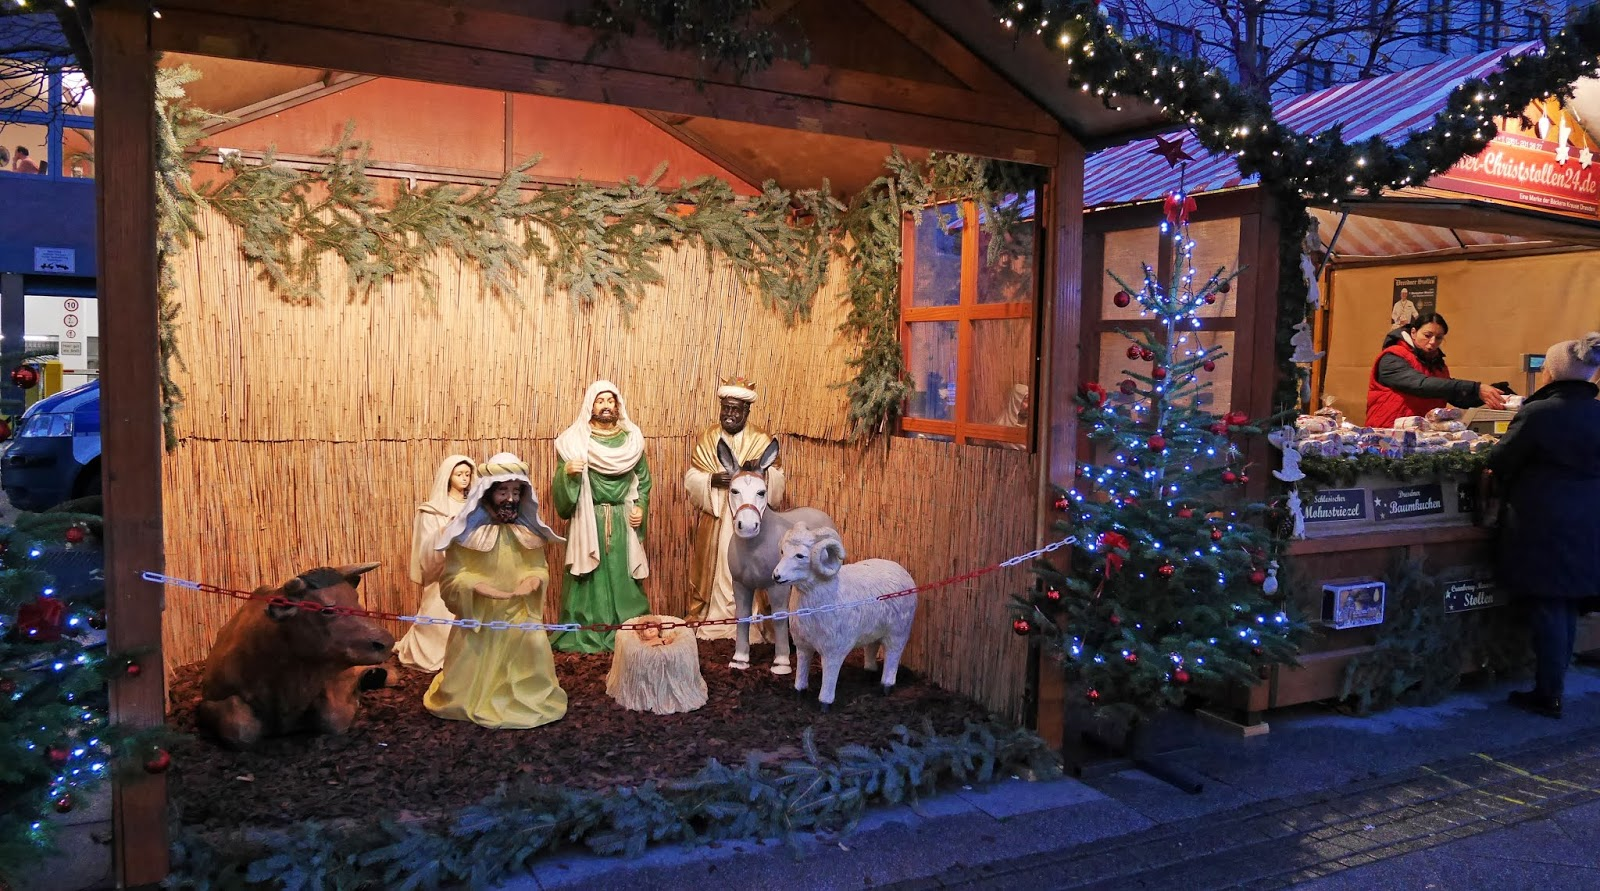 Nativity Scene at Friedrichstraße Station Christmas Market, Berlin